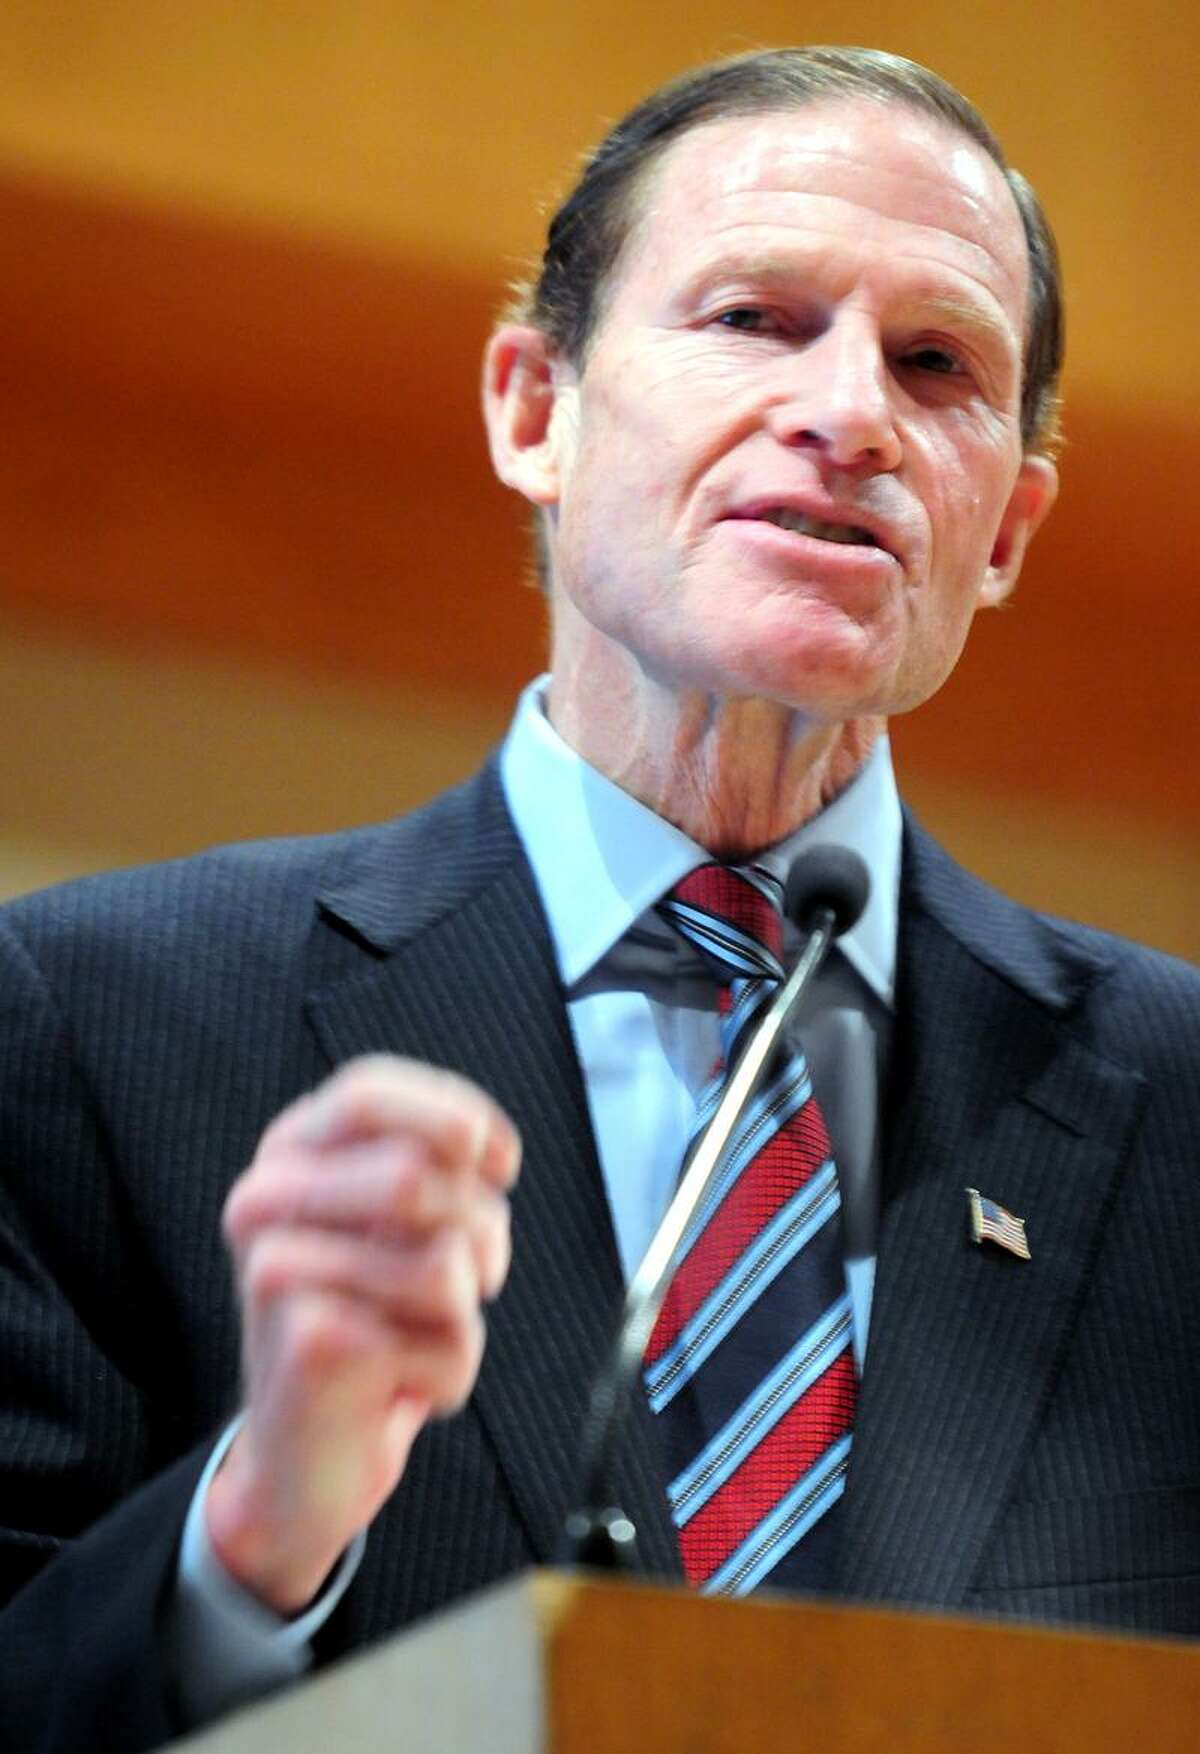 Senator Richard Blumenthal speaks at the rally, We Stand With Israel: Freedom From Fear, at the Jewish Community Center of Greater New Haven in Woodbridge on 11/20/2012.Photo by Arnold Gold/New Haven Register AG0472F